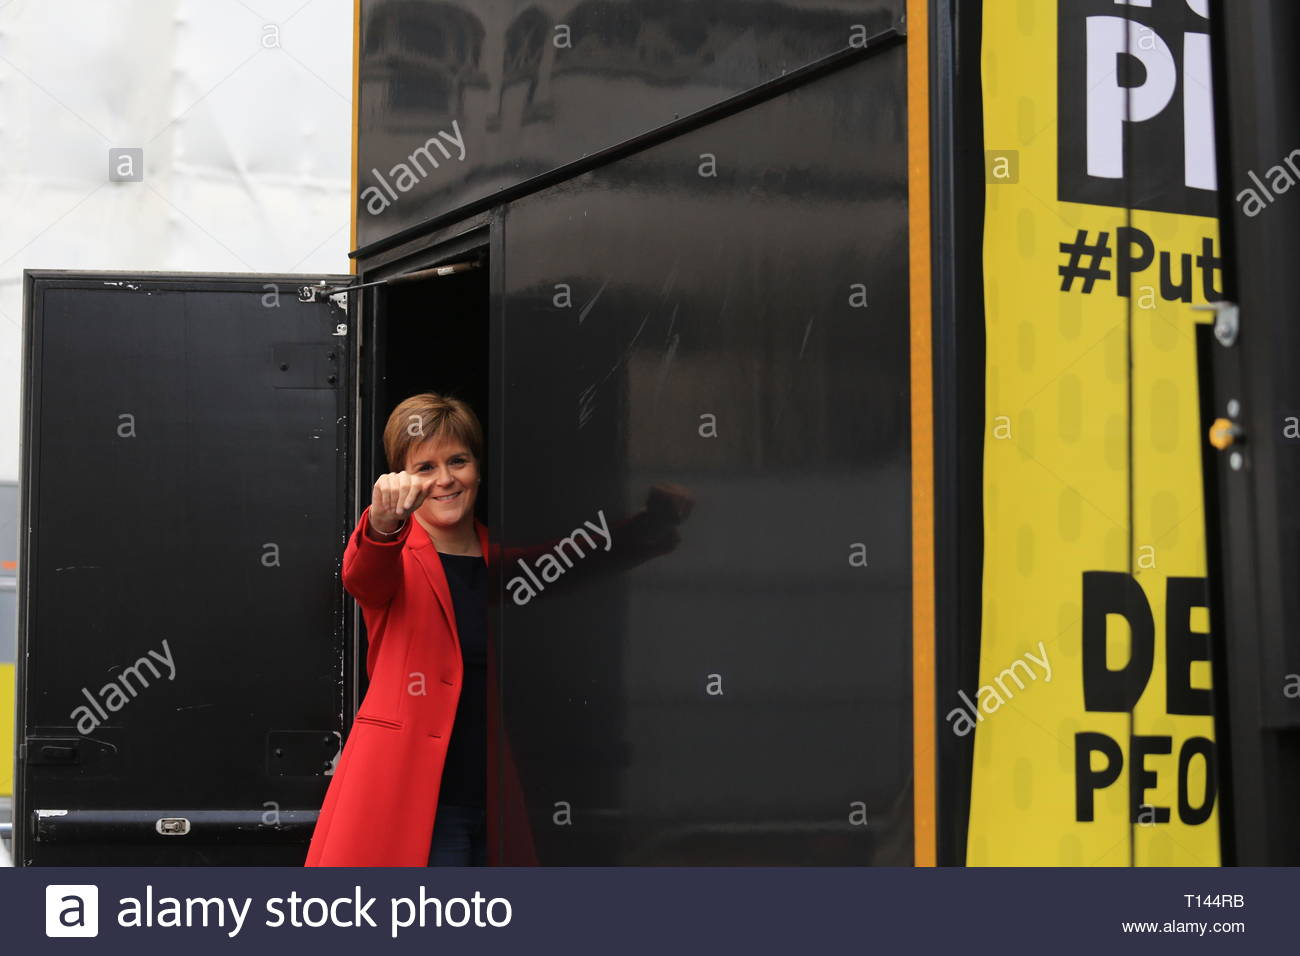 London, UK. 23rd March, 2019. . London, UK. 23rd March, 2019. The people's vote protest has ended at Westminster Westminster.Many well known speakers including Tom Watson and Nicola Sturgeon addressed the crowd this evening, calling on Prime Minister May to allow a second vote. Credit: Clearpix/Alamy Live News Credit: Clearpix/Alamy Live News - Stock Image